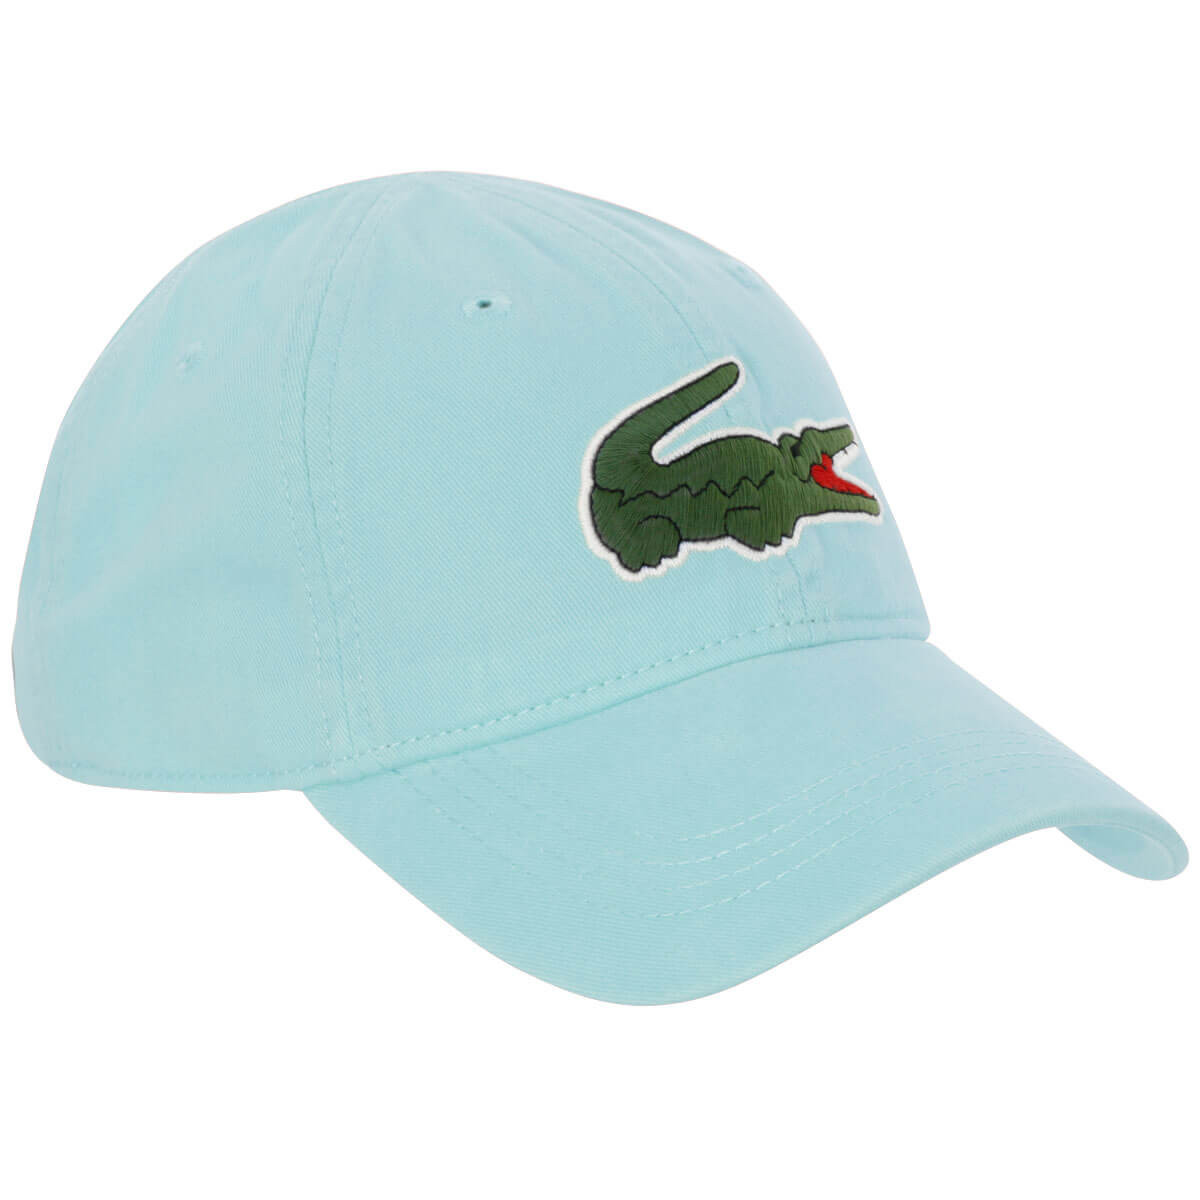 7c4d989a Lacoste Mens 2019 Big Croc Gabardine Adjustable Cap - Lacoste - A-Z ...